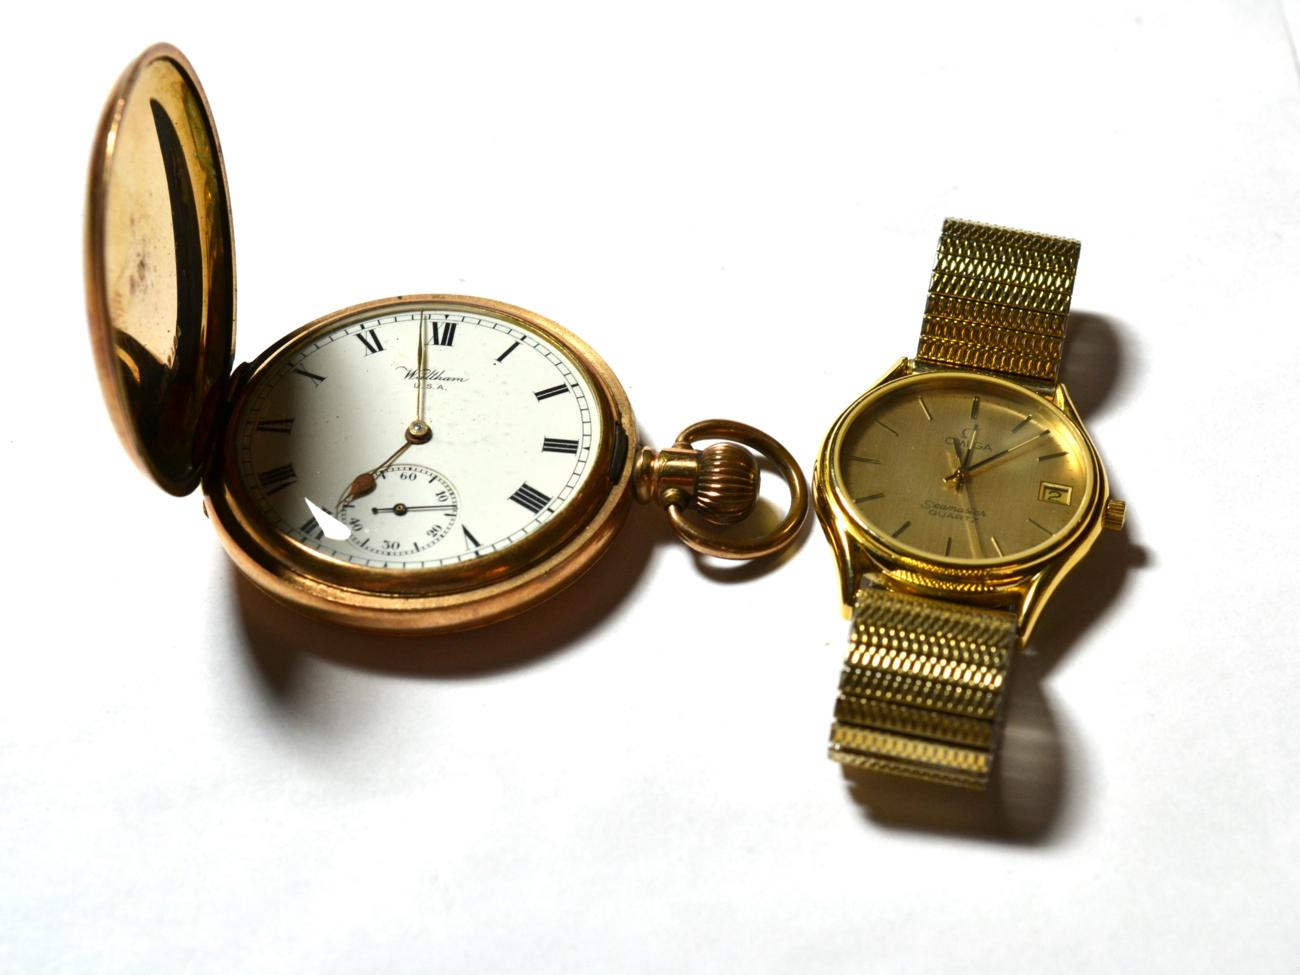 Lot 178 - A gent's gilt metal Omega Seamaster with date aperture, together with a Waltham gilt metal pocket